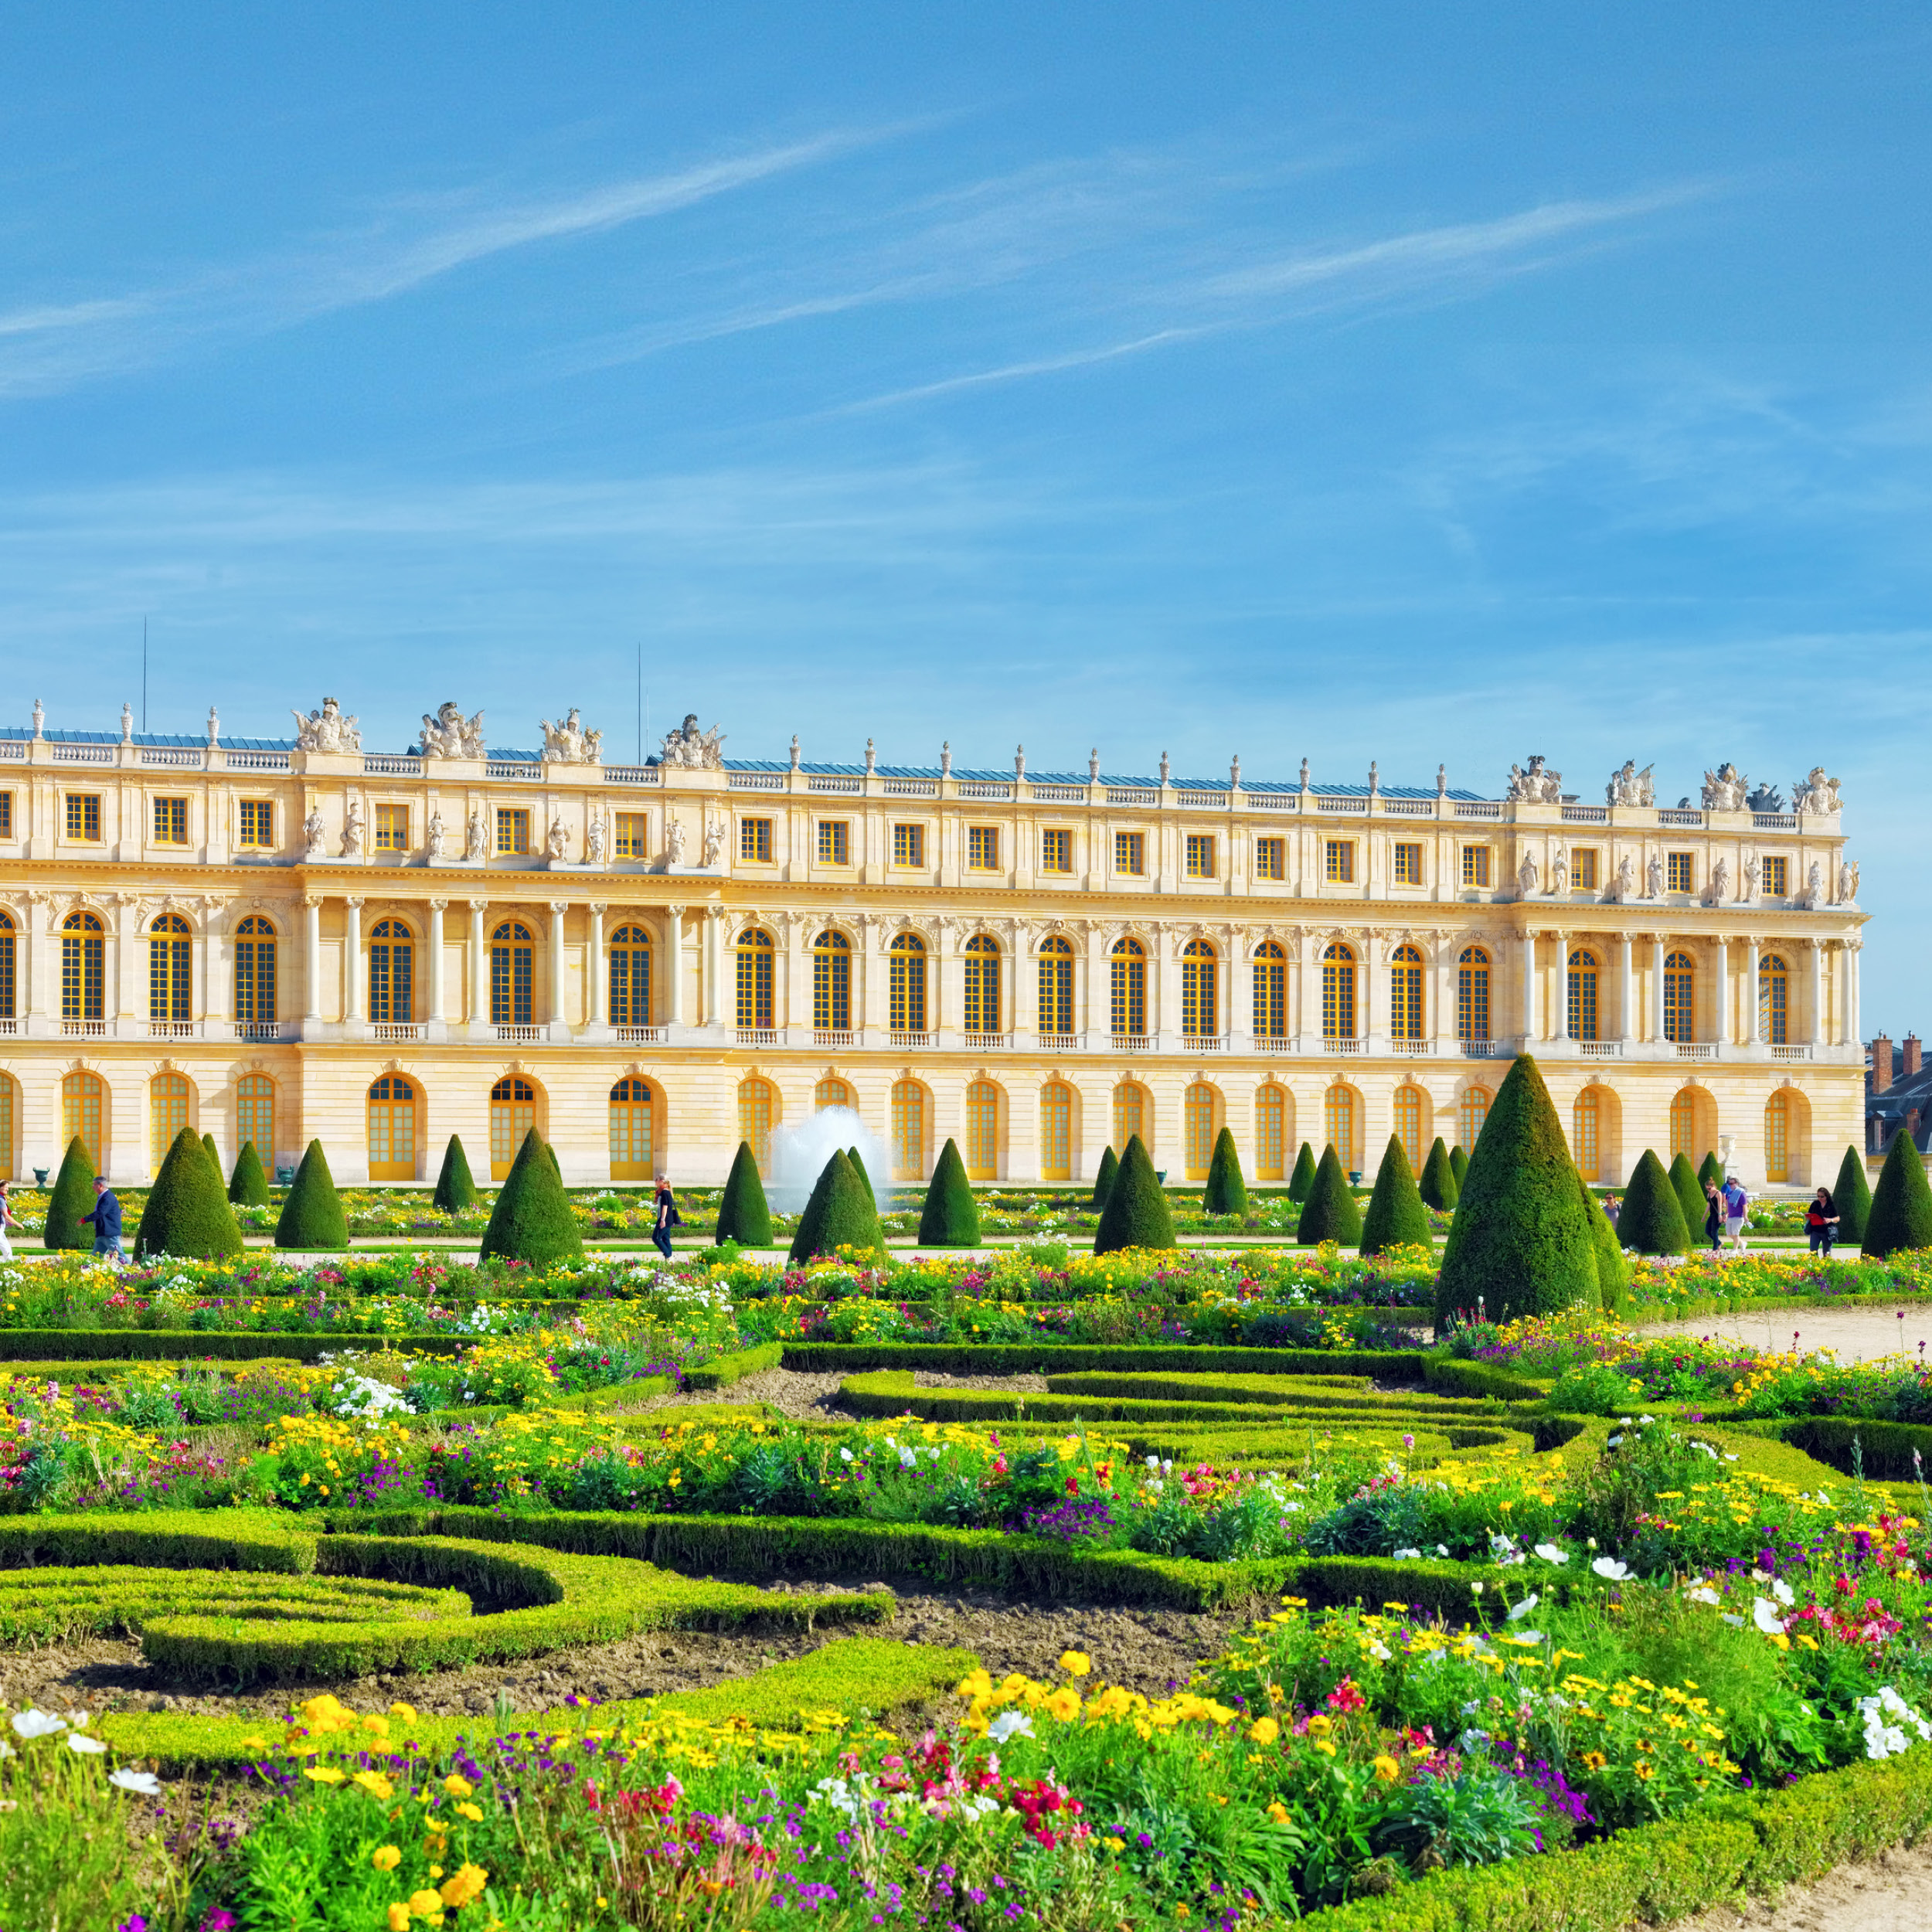 Chateaux, Parks and Gardens: Legacy of Royal France